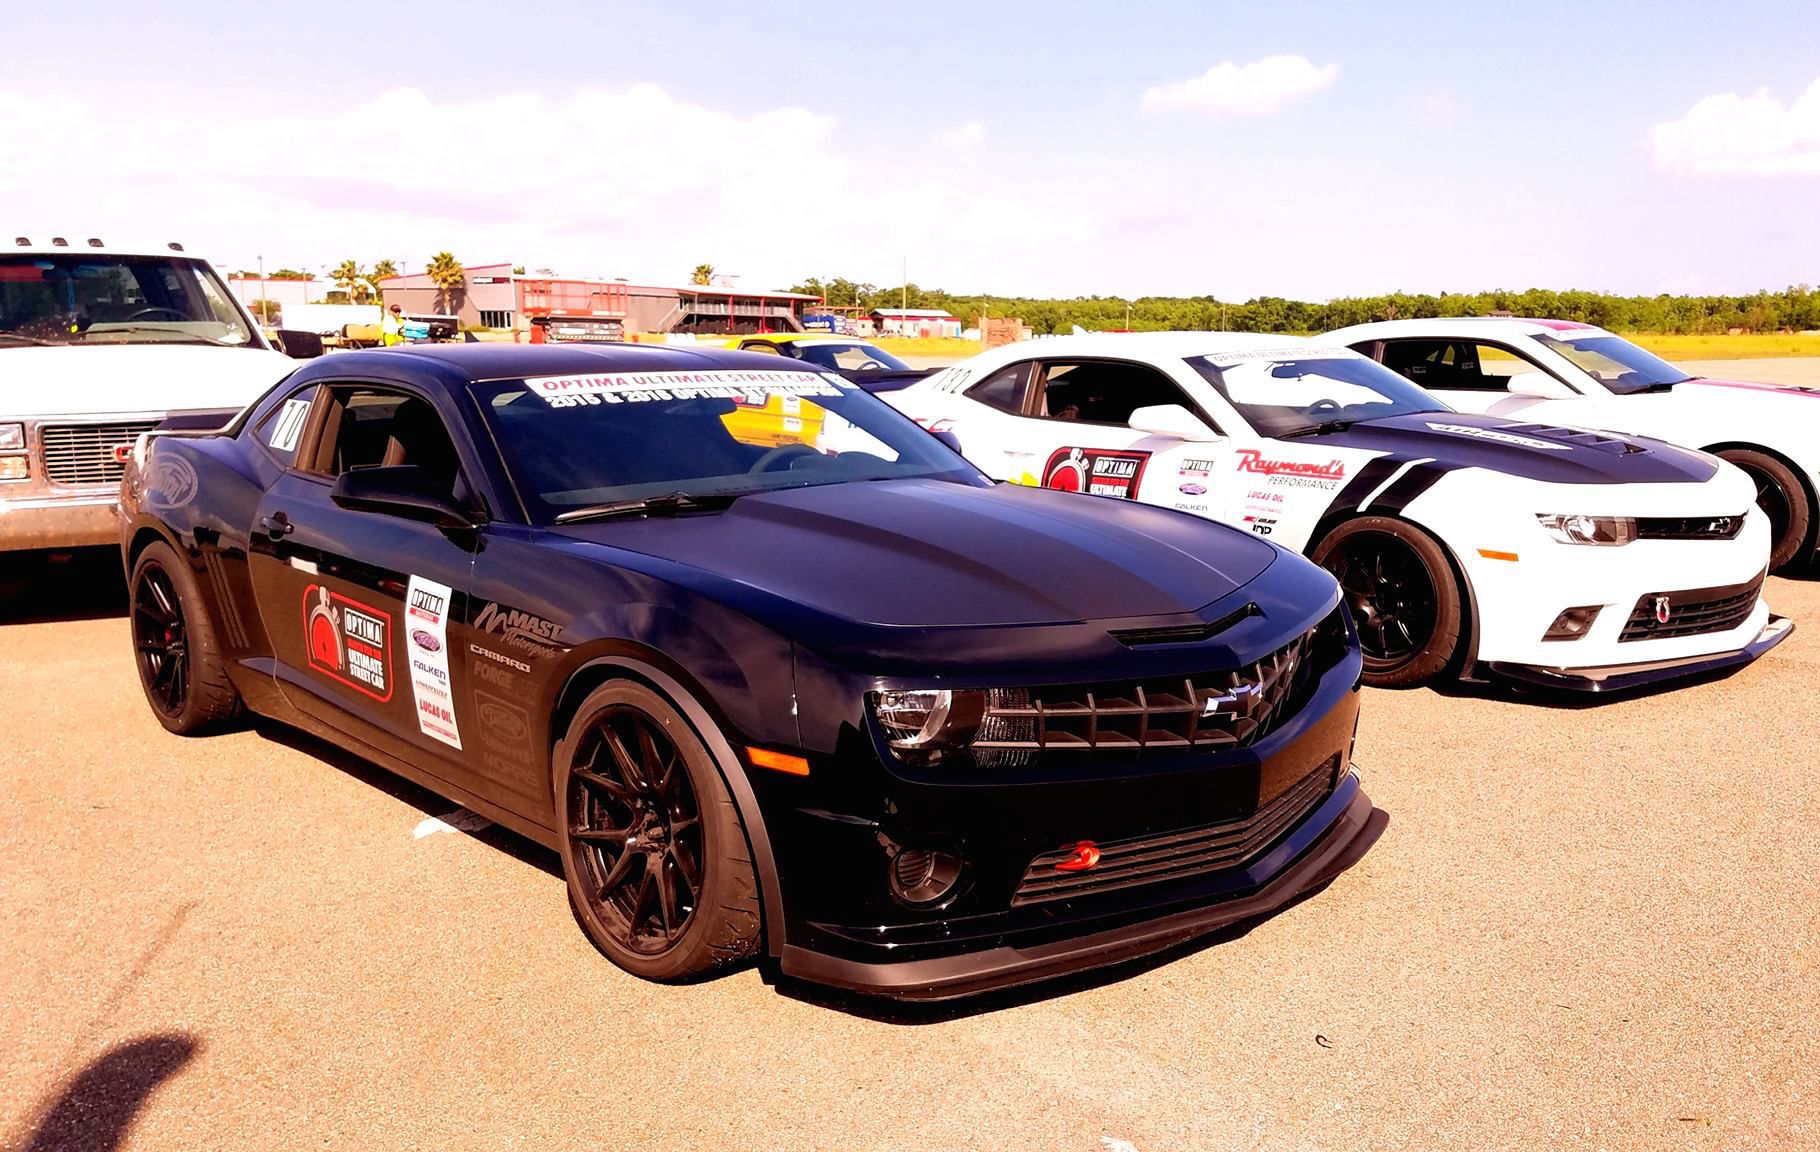 2013 Chevrolet Camaro | Bryan Johnson Wins GT Class at USCA NOLA with 5th Gen Camaro on Forgeline One Piece Forged Monoblock GA1R Open Lug Wheels